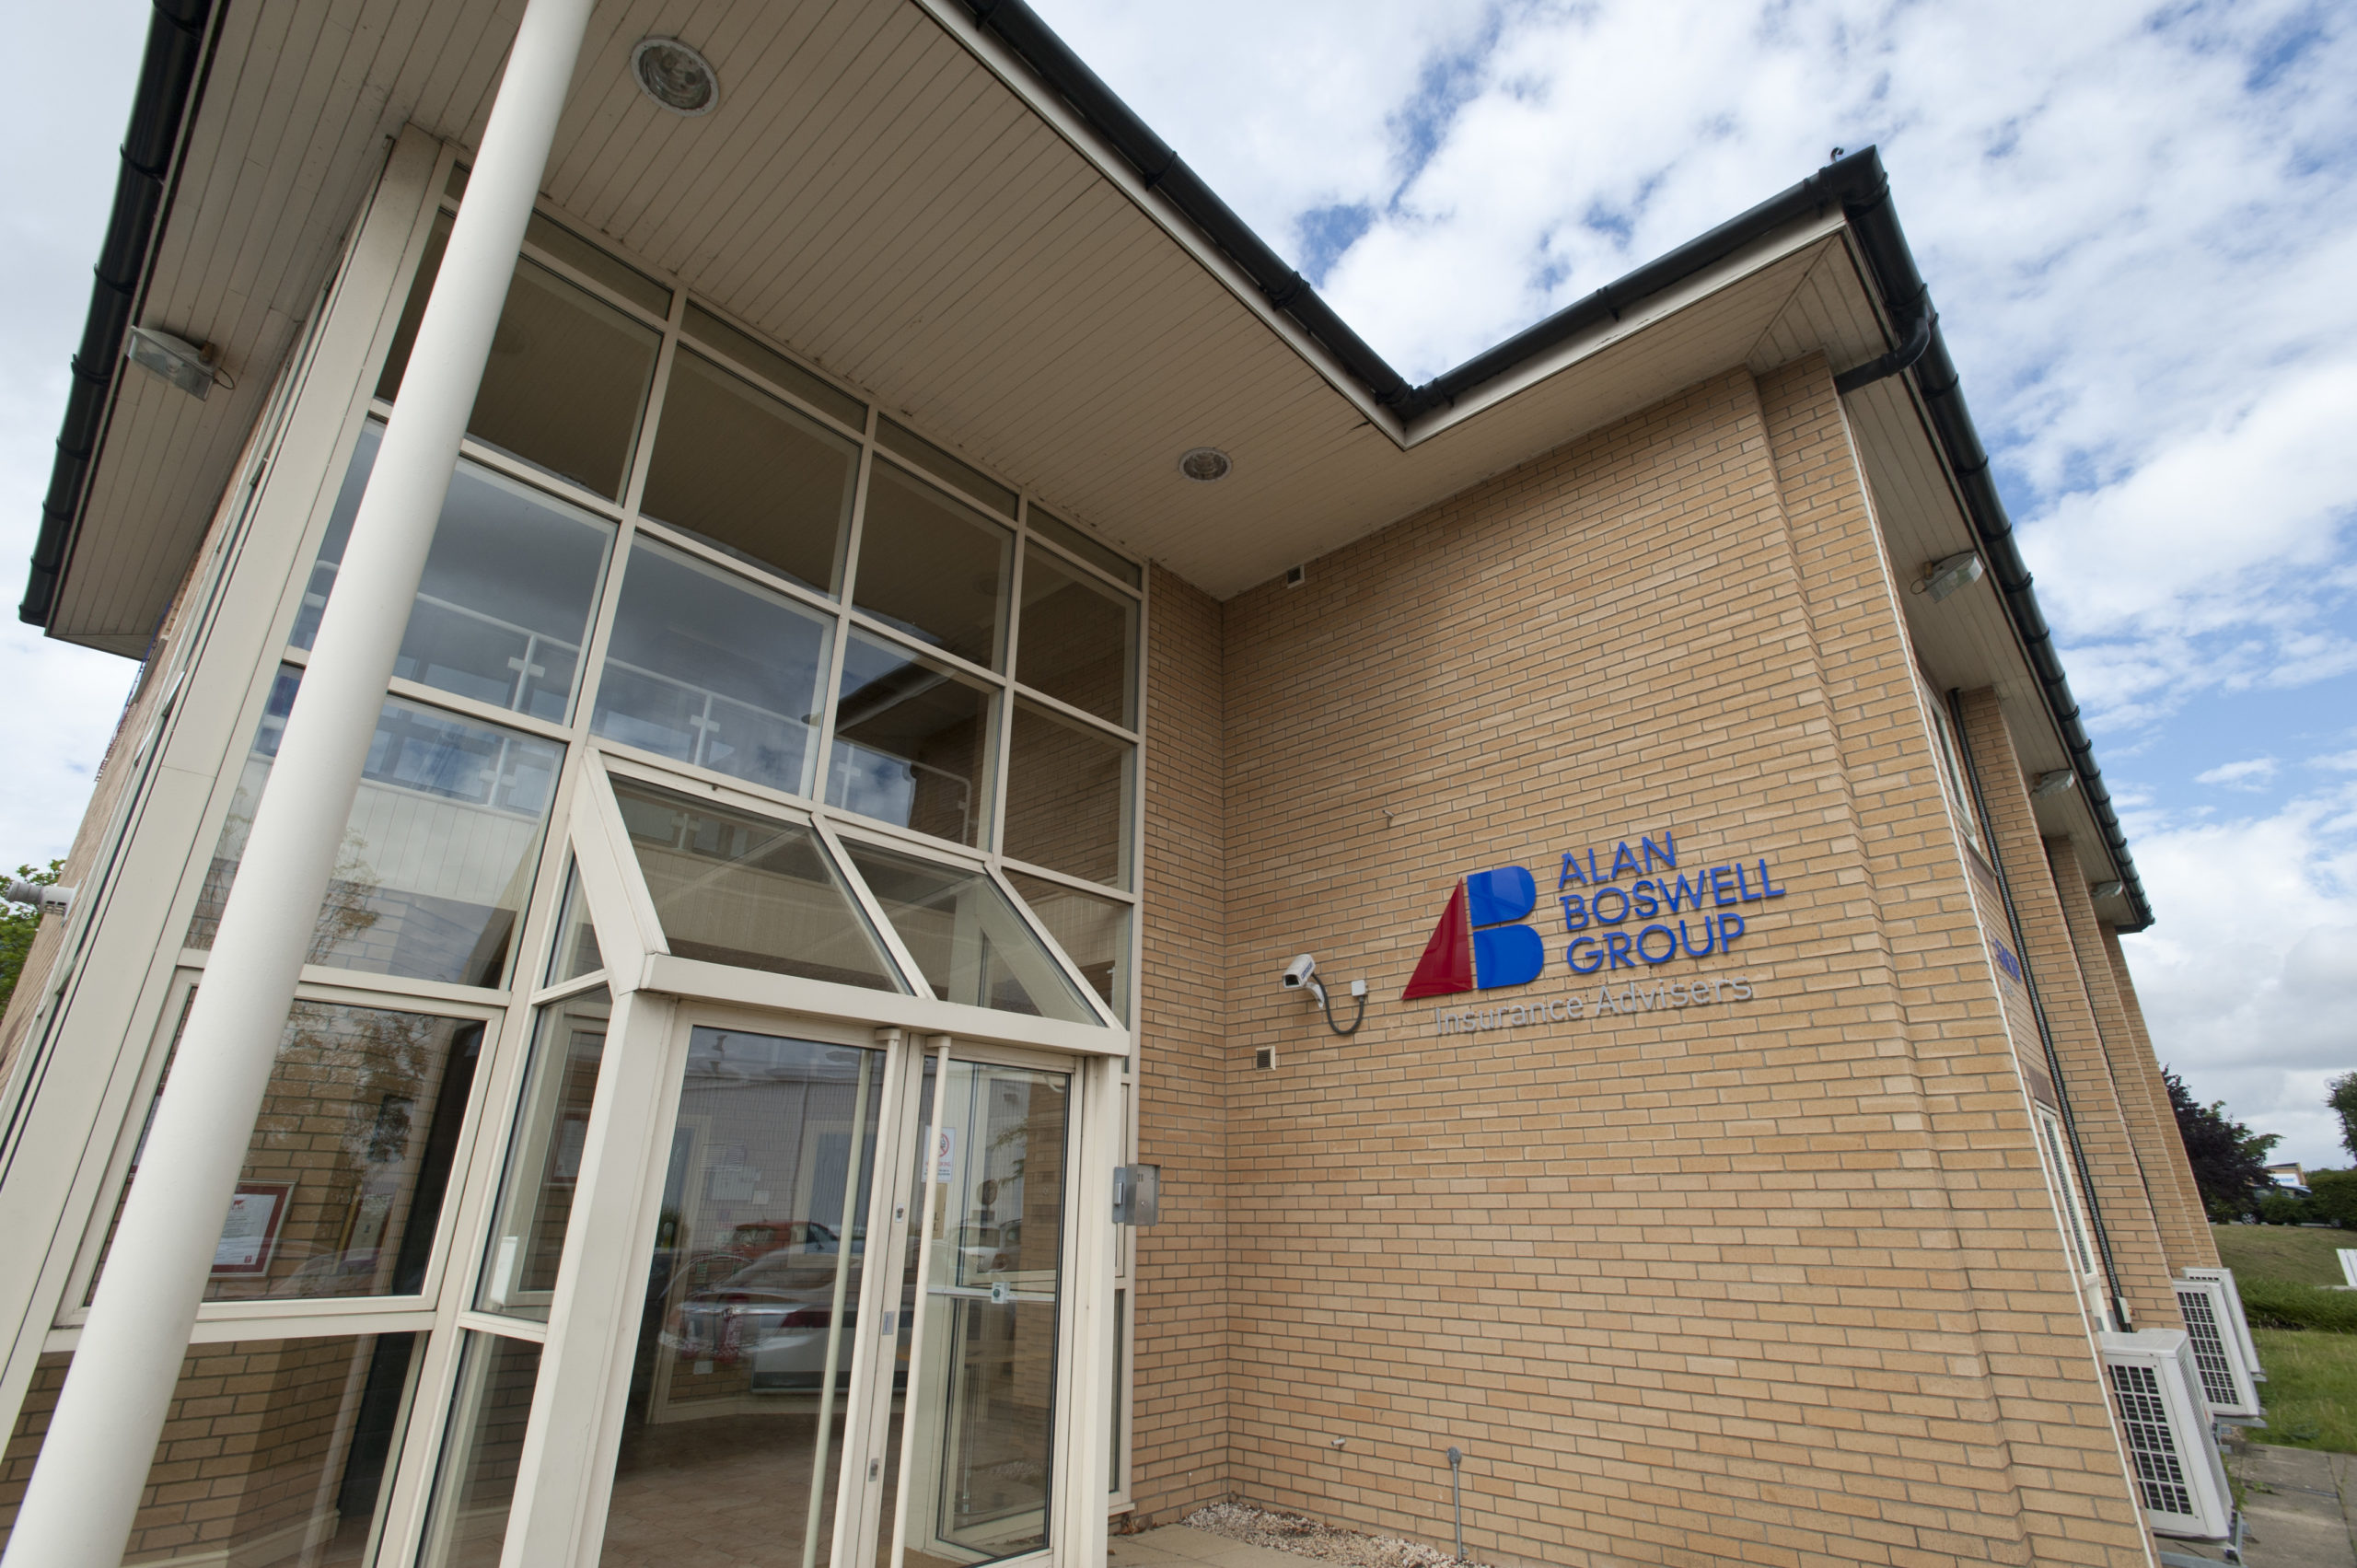 Insurance Brokers in Peterborough, Cambridgeshire | Alan Boswell Group